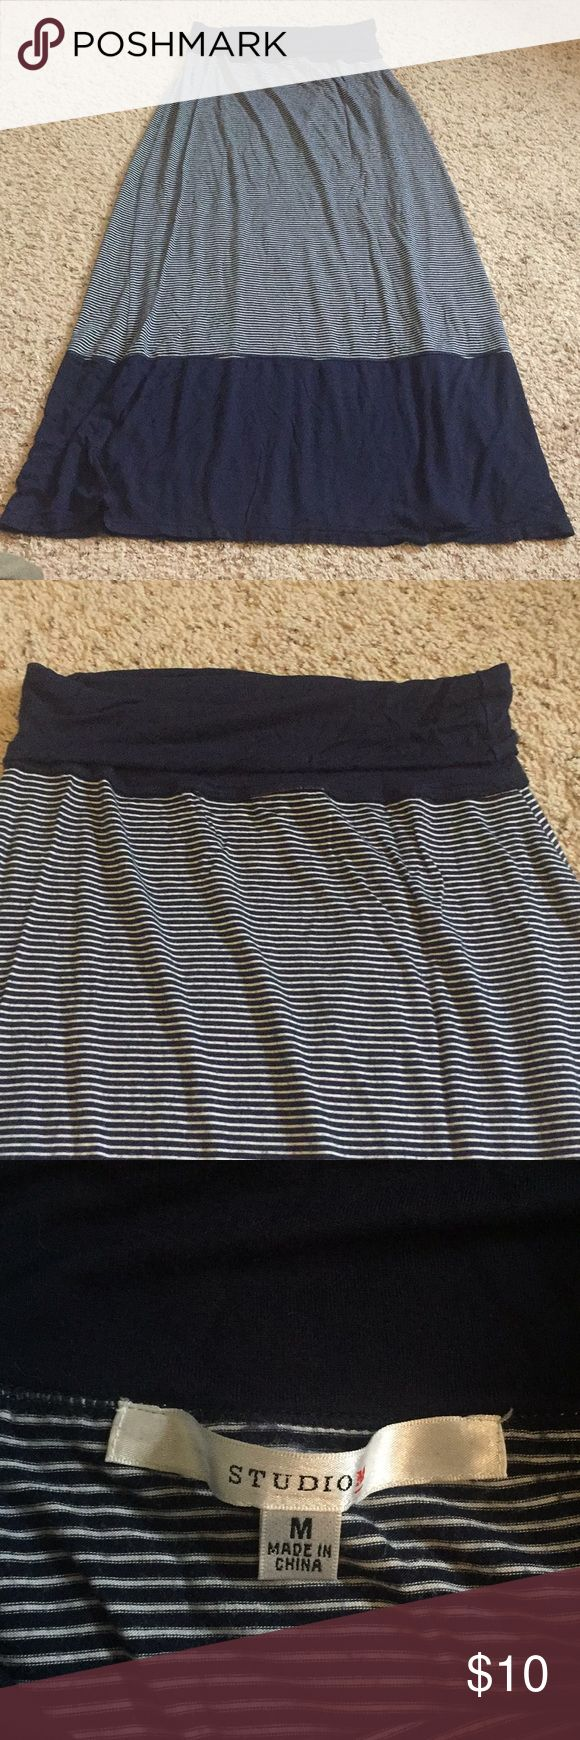 Studio M navy and white stripped maxi skirt medium Studio M brand navy and white stripped maxi skirt. Size medium. Super cute, thicker fabric so it is not see through. Great paired with a plain white tee and a cute necklace! Studio M Skirts Maxi